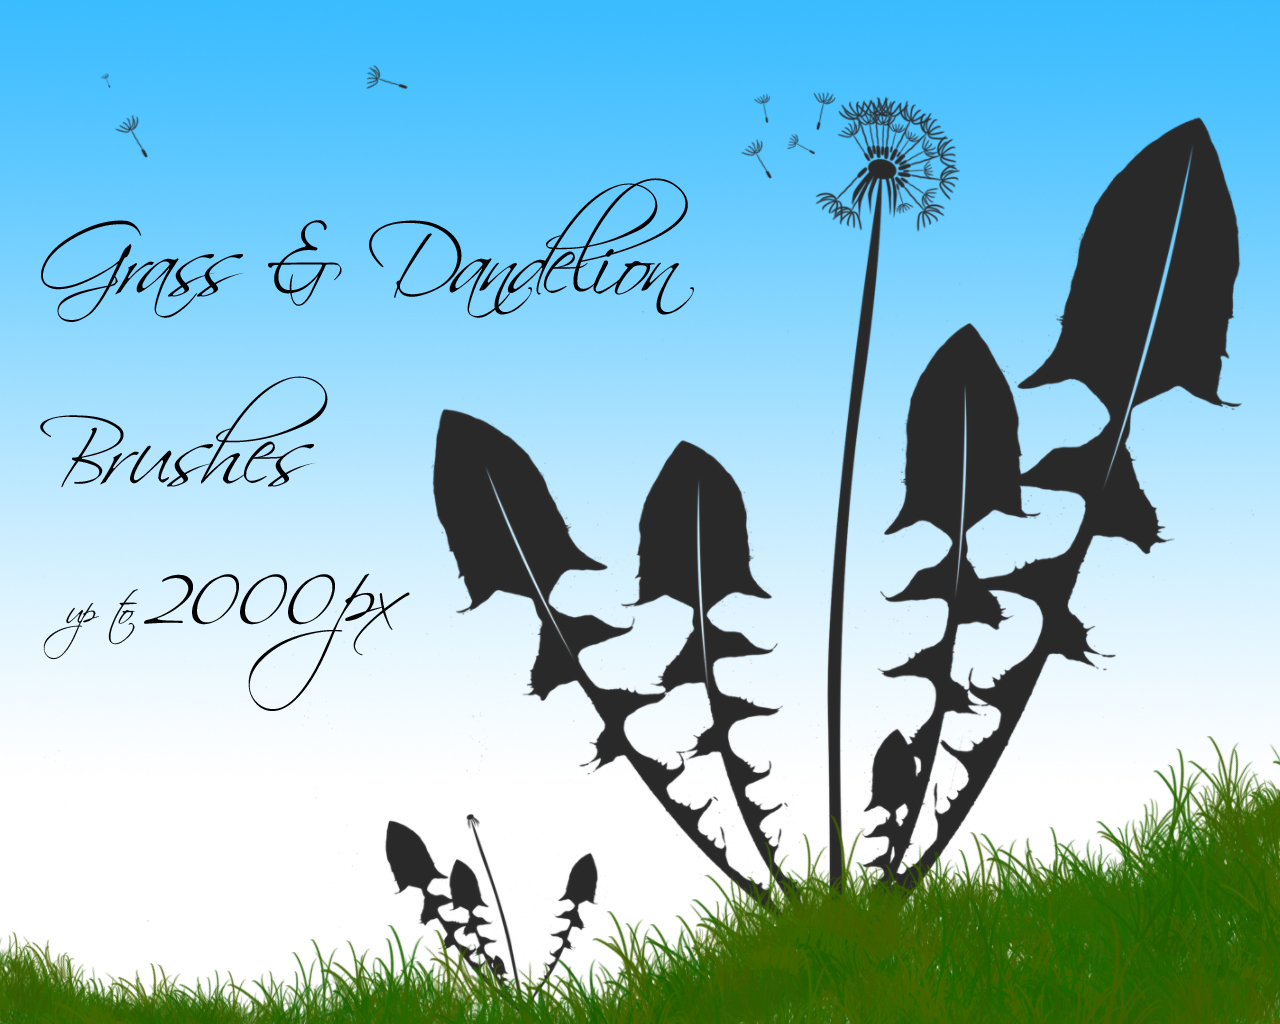 Grass and Dandelion Brushes